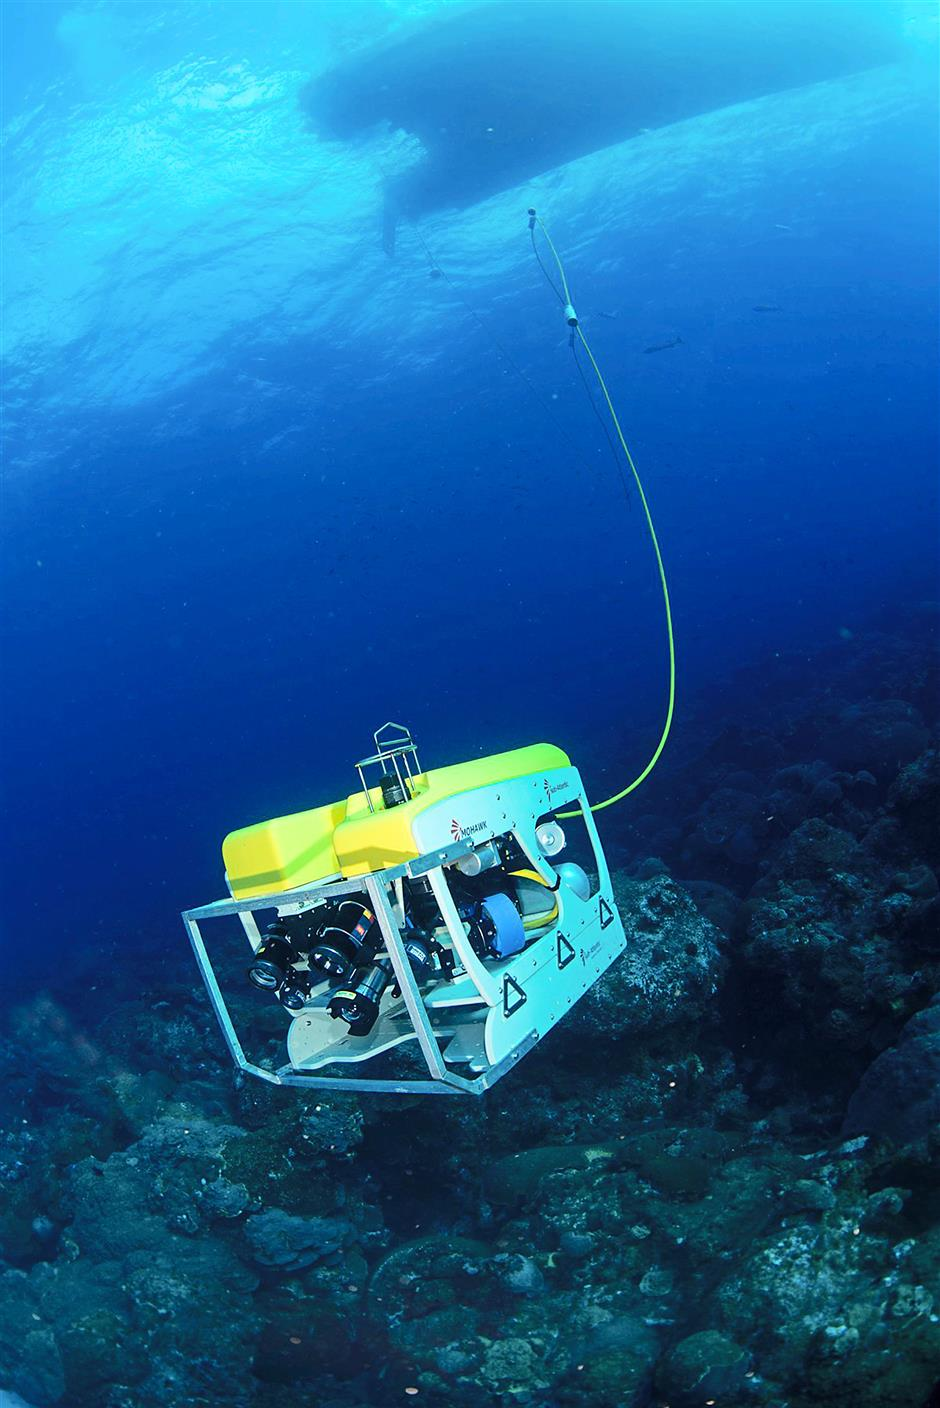 Scientists will use a remotely operated vehicle (ROV) to learn more about the structure of the sea floor more than 330m deep in Dry Tortugas.